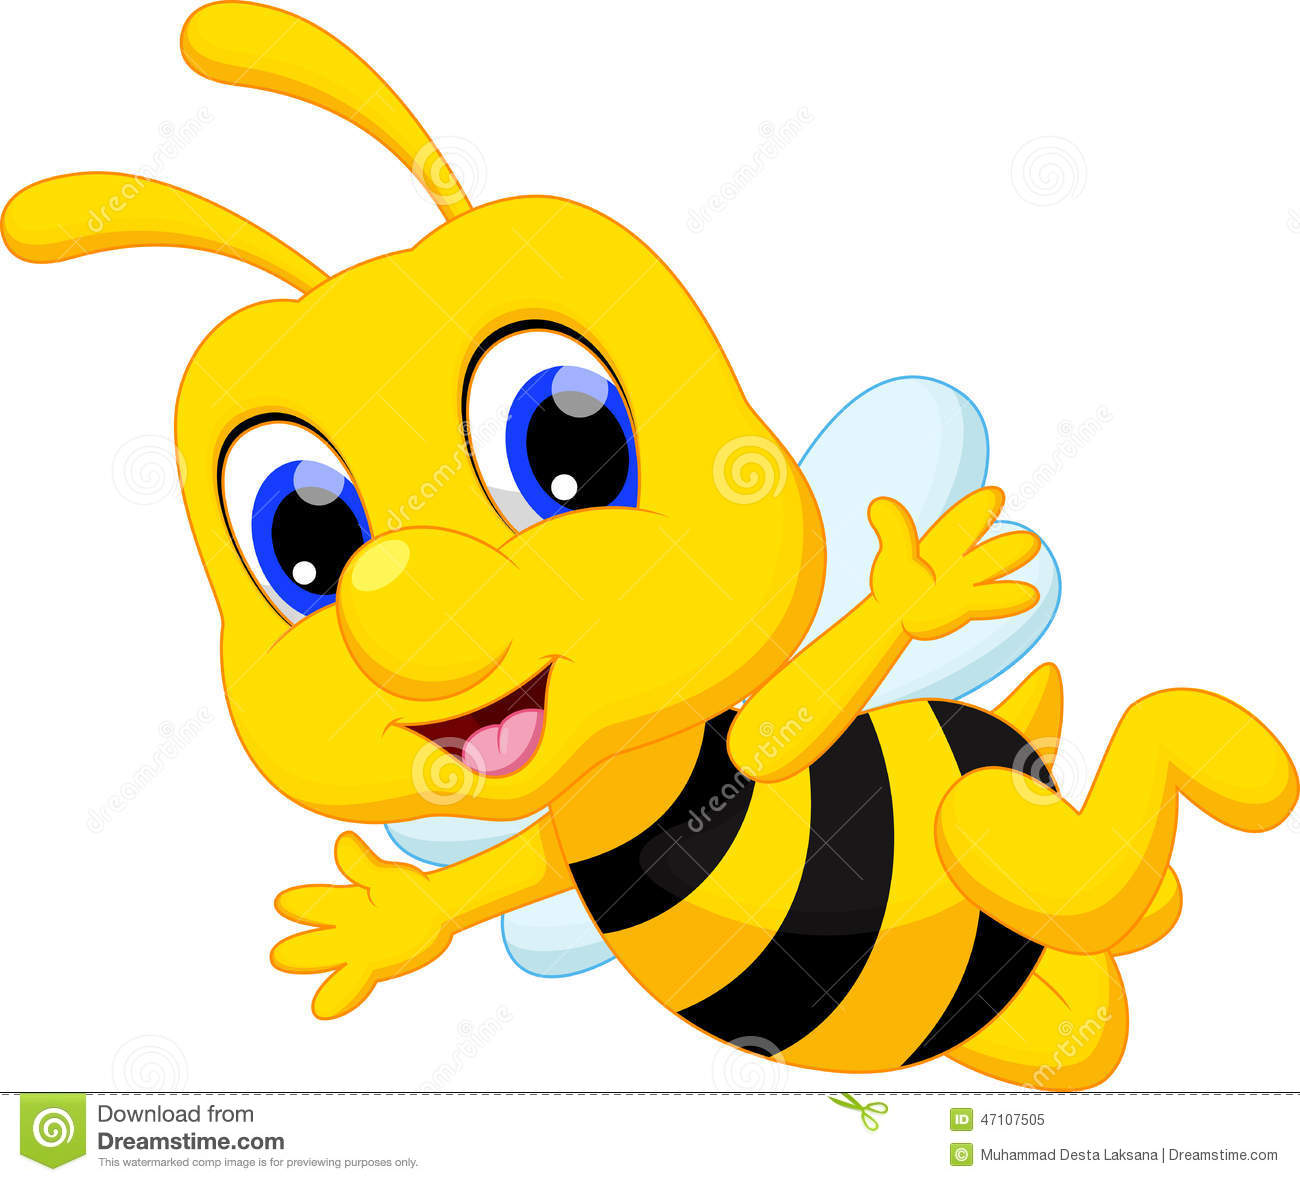 how to draw a cute bumble bee